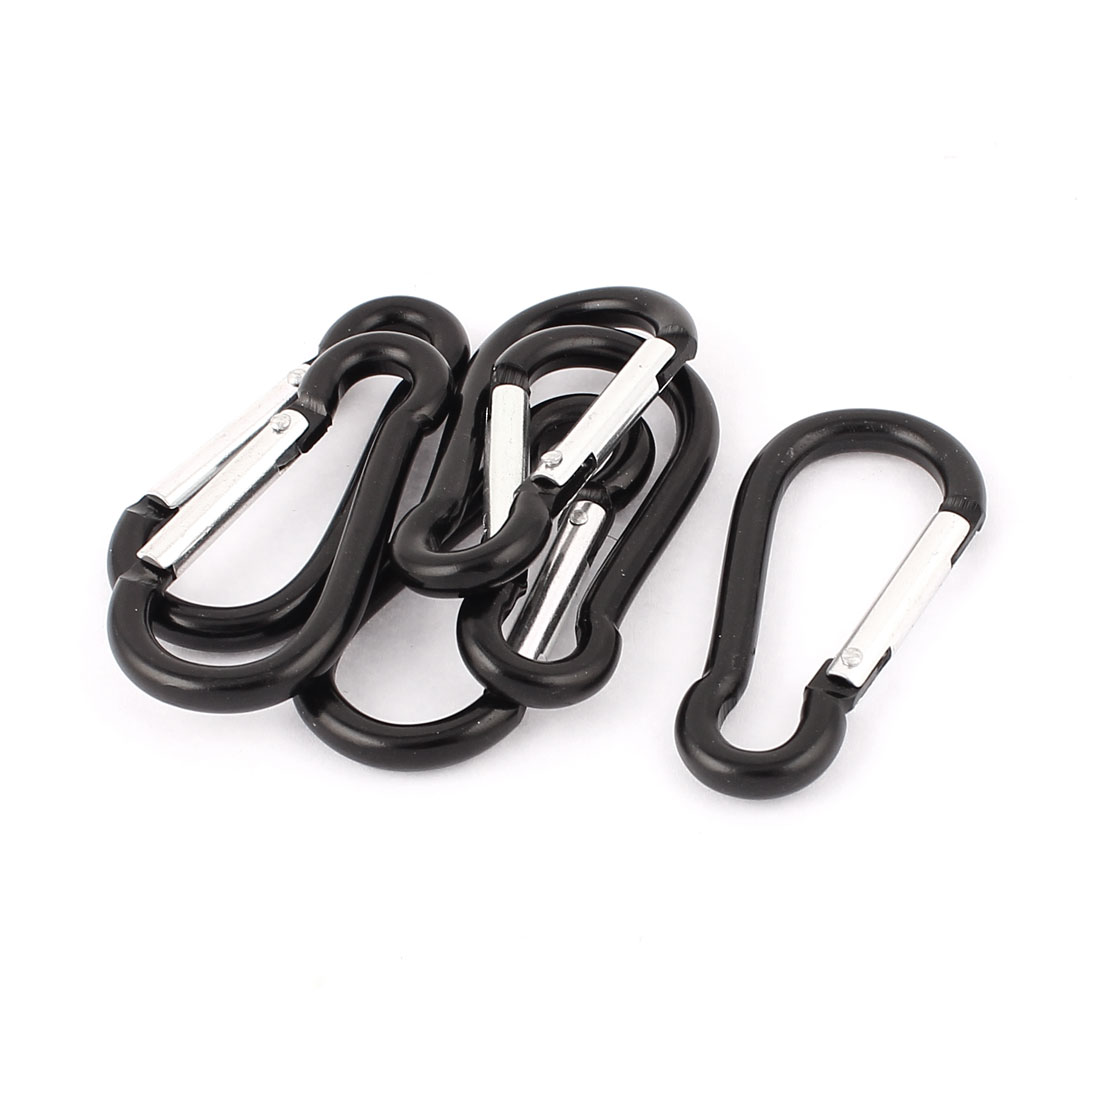 Camping Tracveling Aluminum Alloy Carabiner Grab Hook Clip Holder Black 6 Pcs